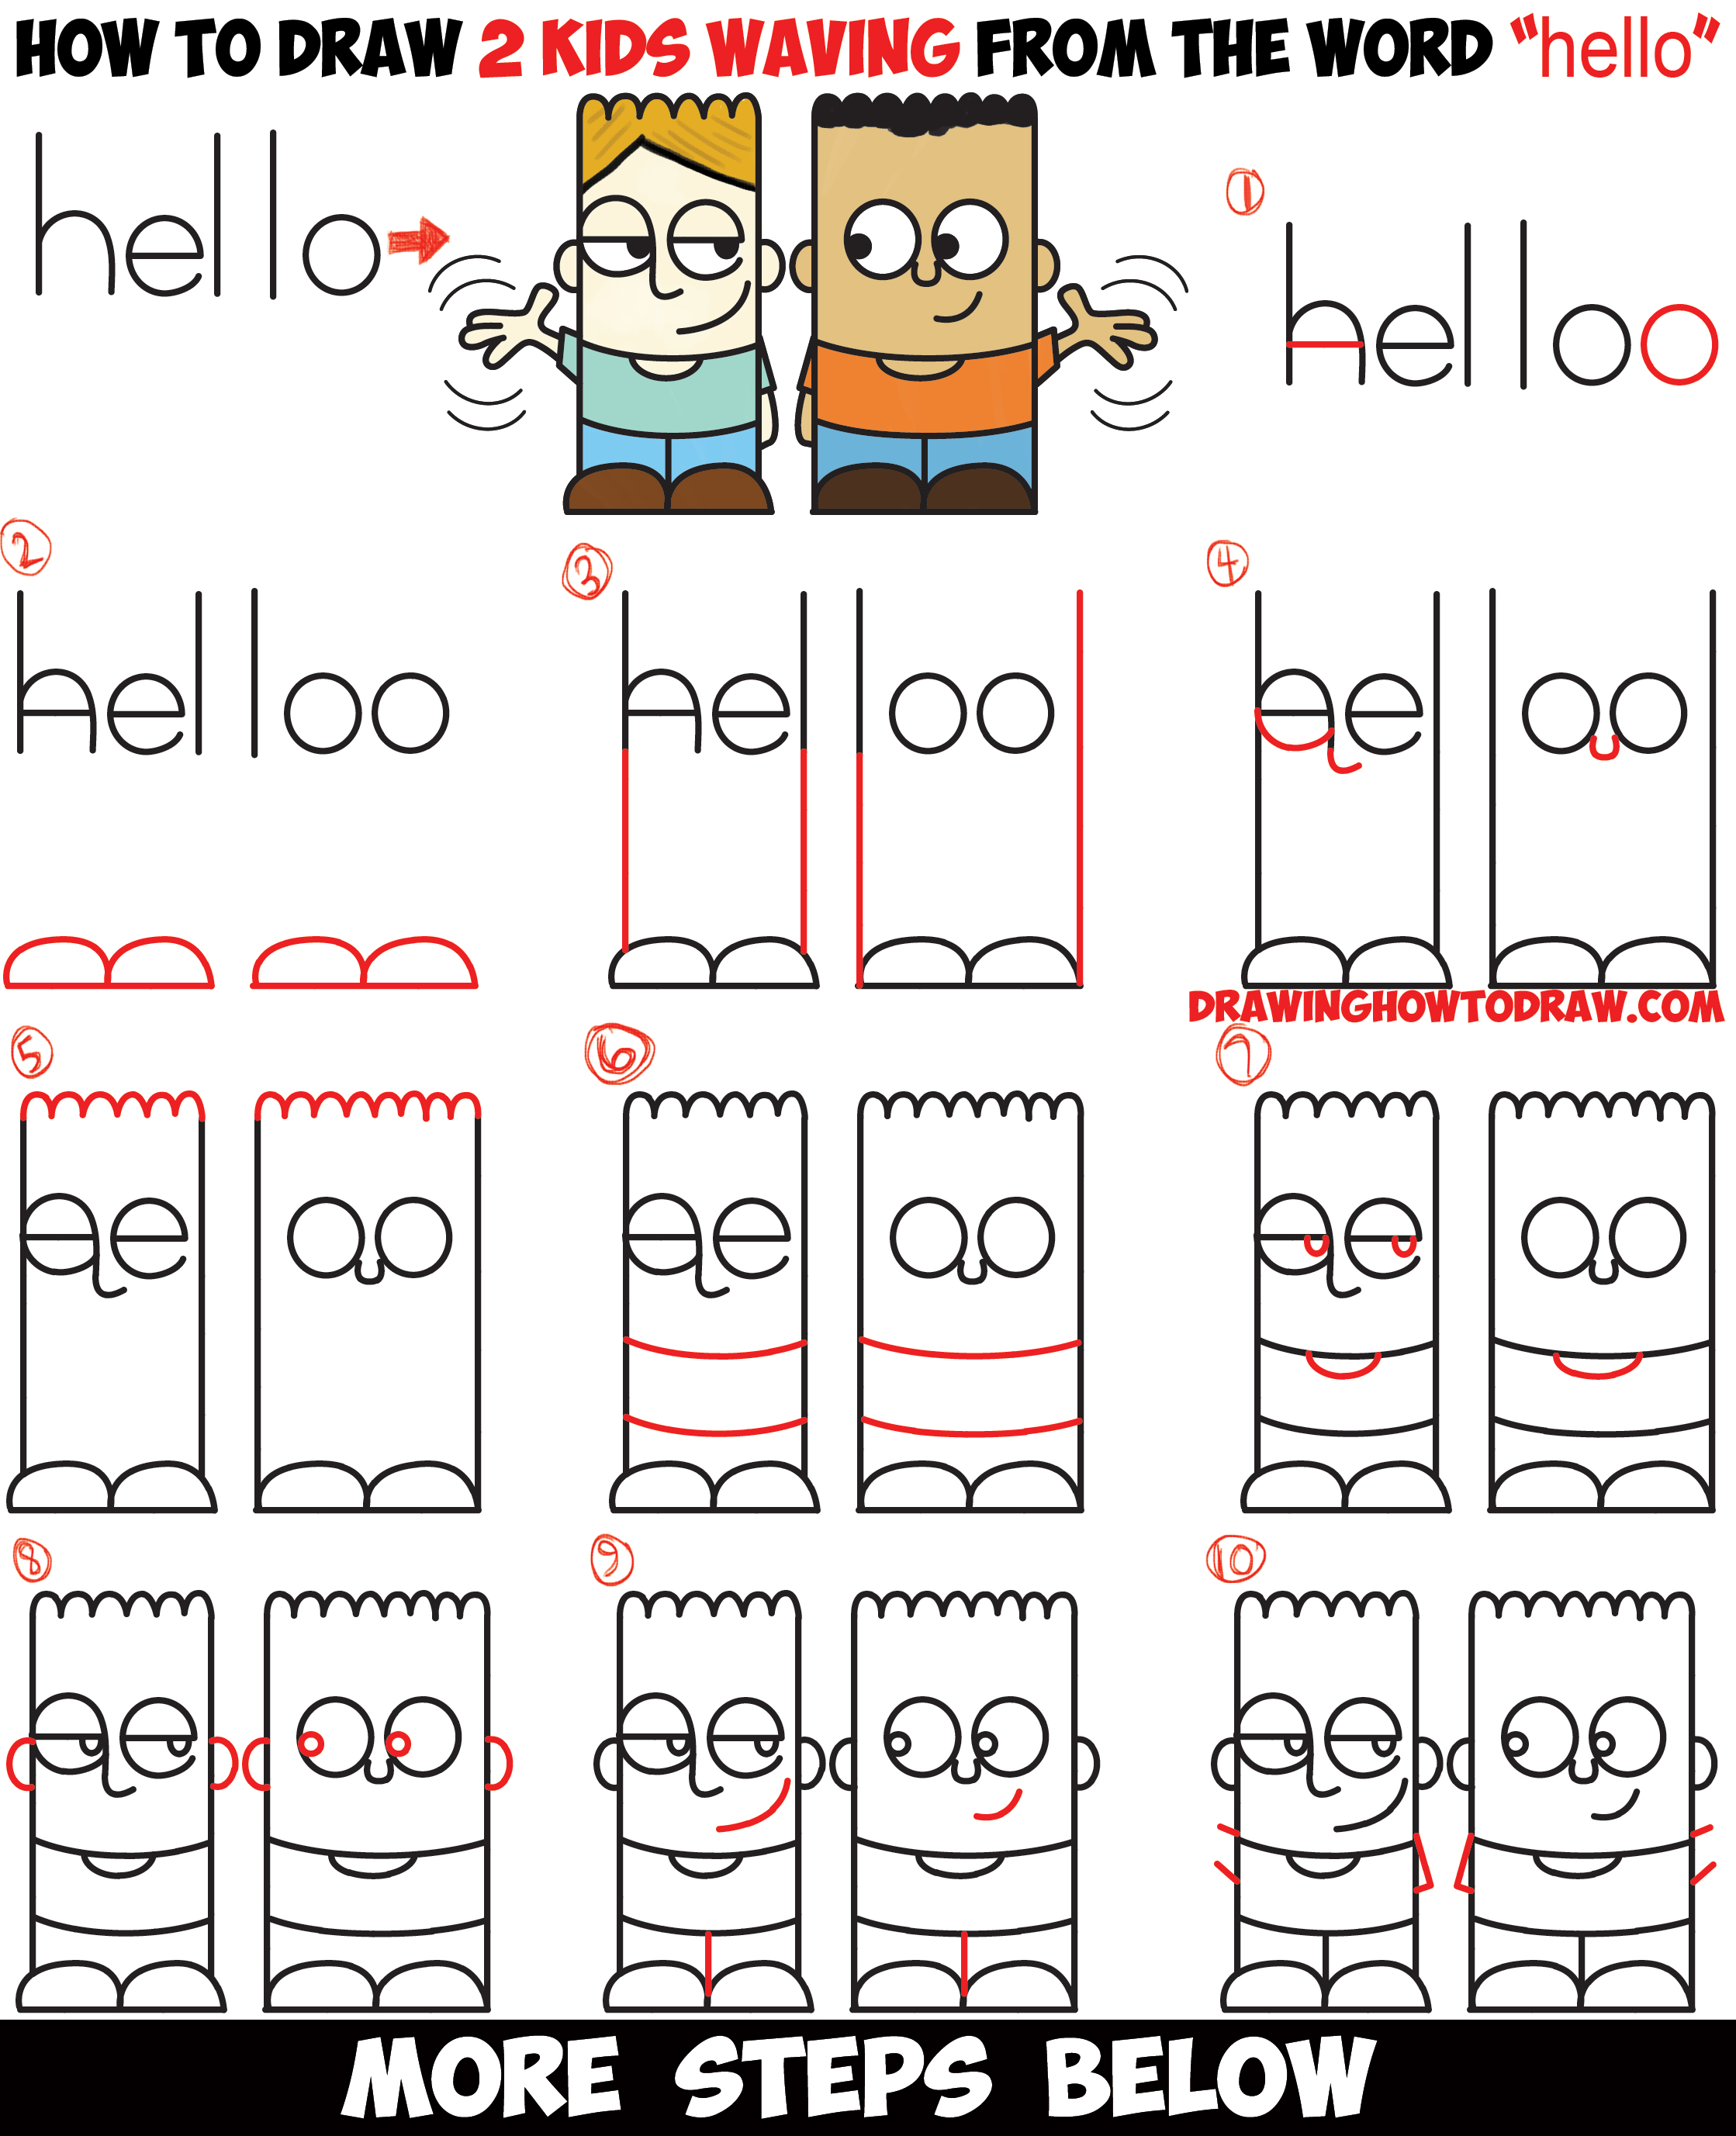 """LearnHow to Draw 2 Cartoon Characters from the Word """"hello"""" Easy Step by Step Word Toon Drawing Tutorial for Kids"""